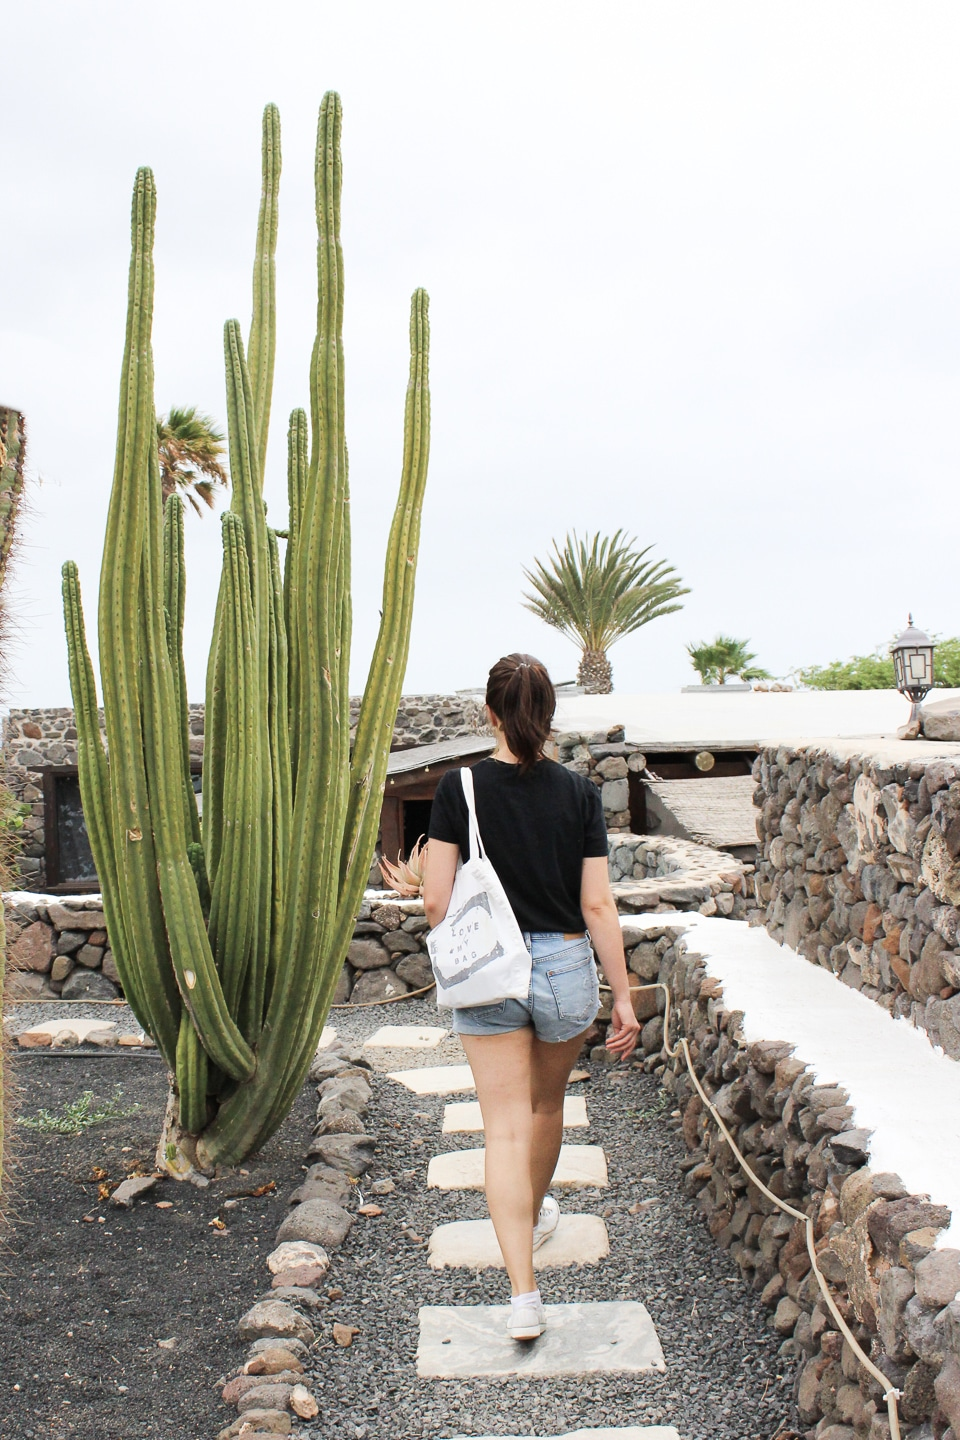 Walking through Finca de Arrieta Eco Village